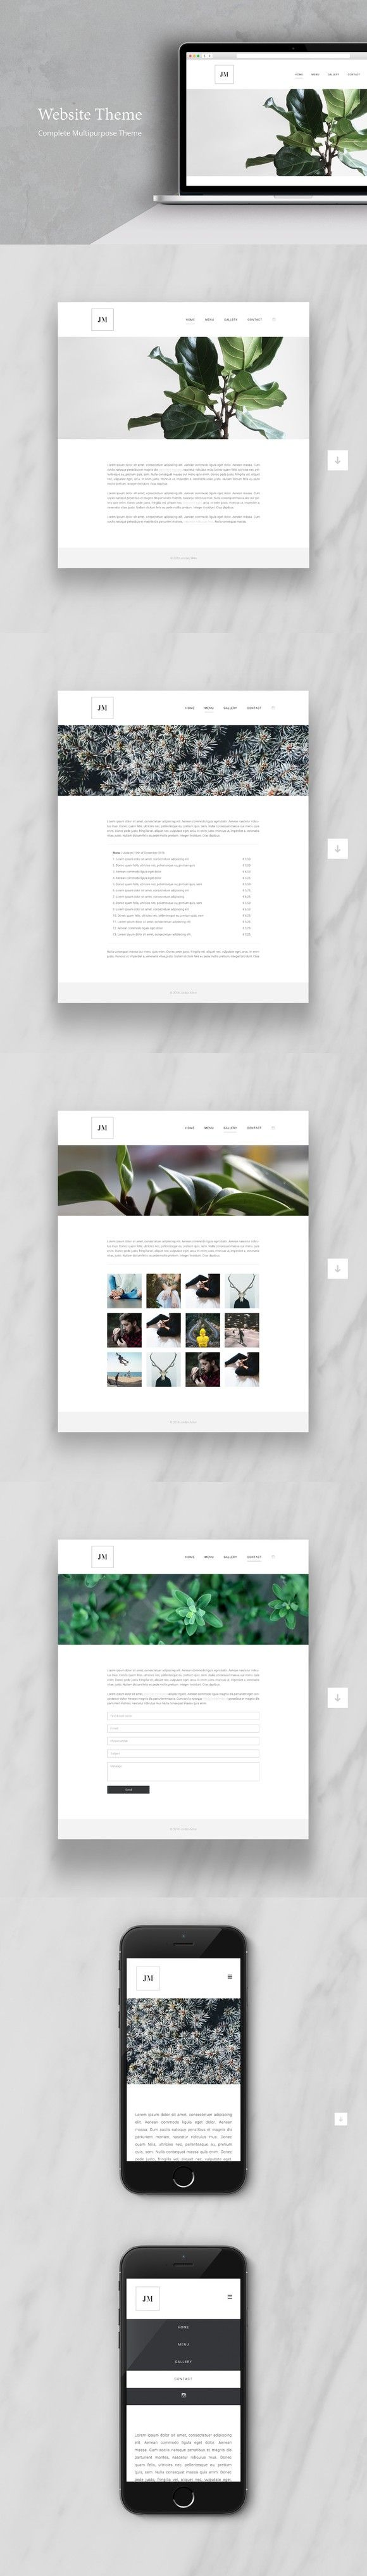 687 best HTML/CSS Themes images on Pinterest | Blogger templates ...